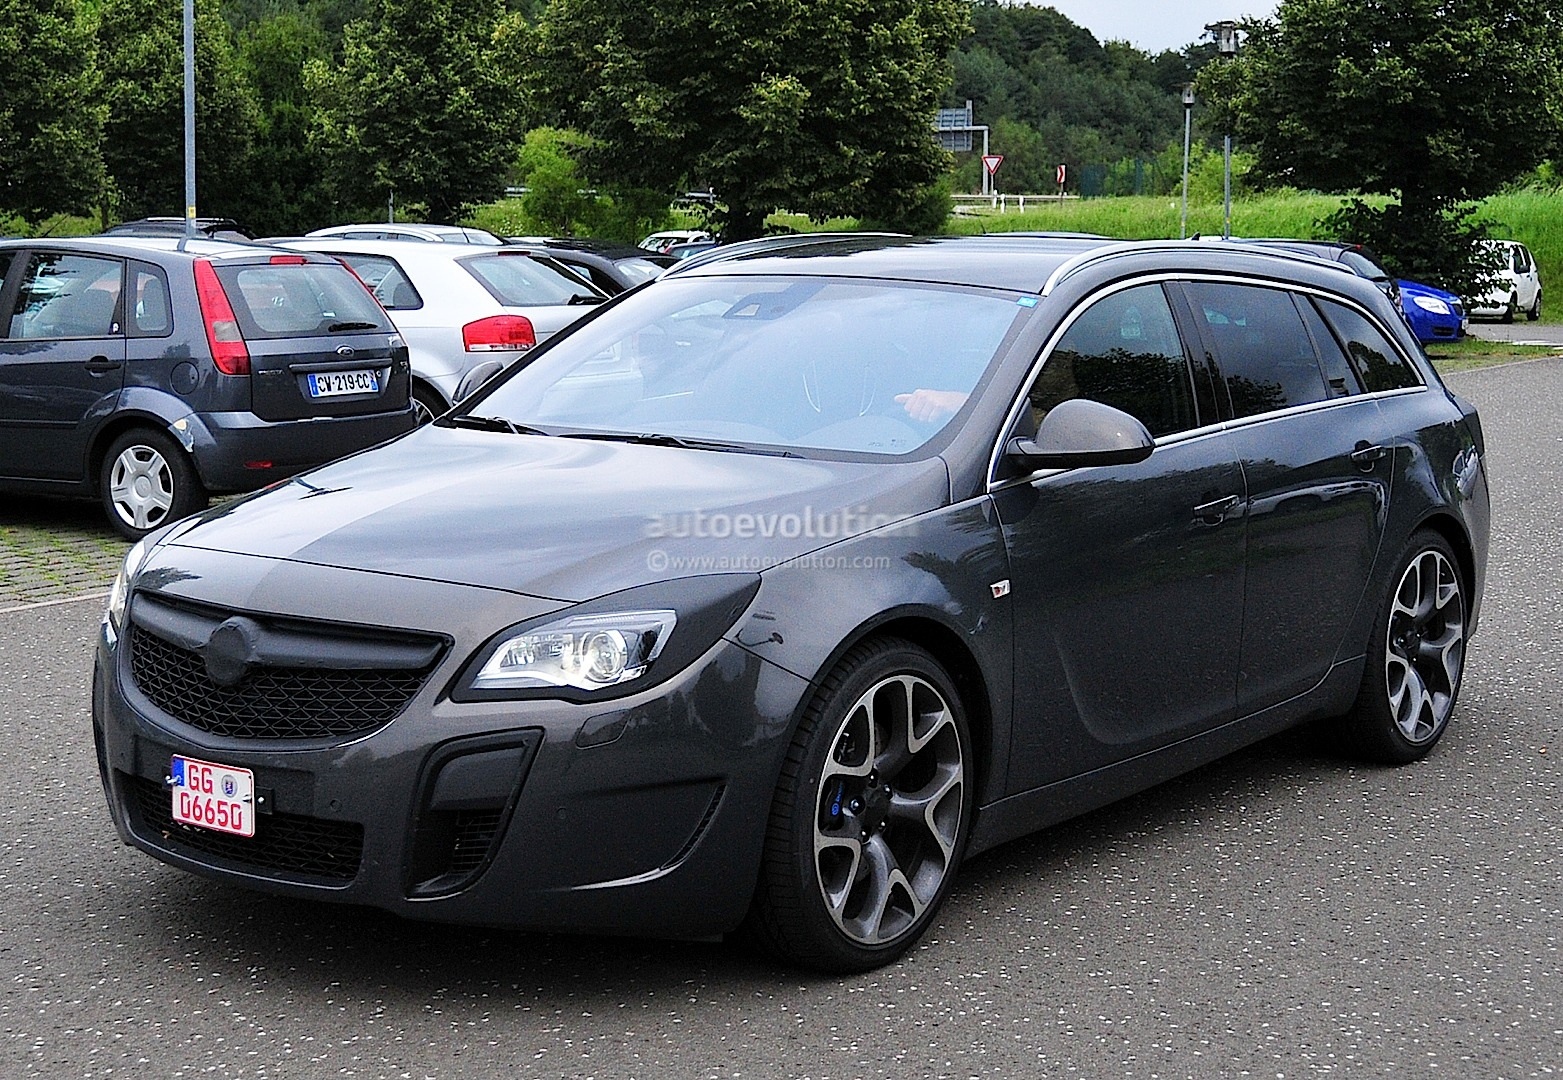 Spyshots Opel Insignia OPC Sports Tourer Getting A